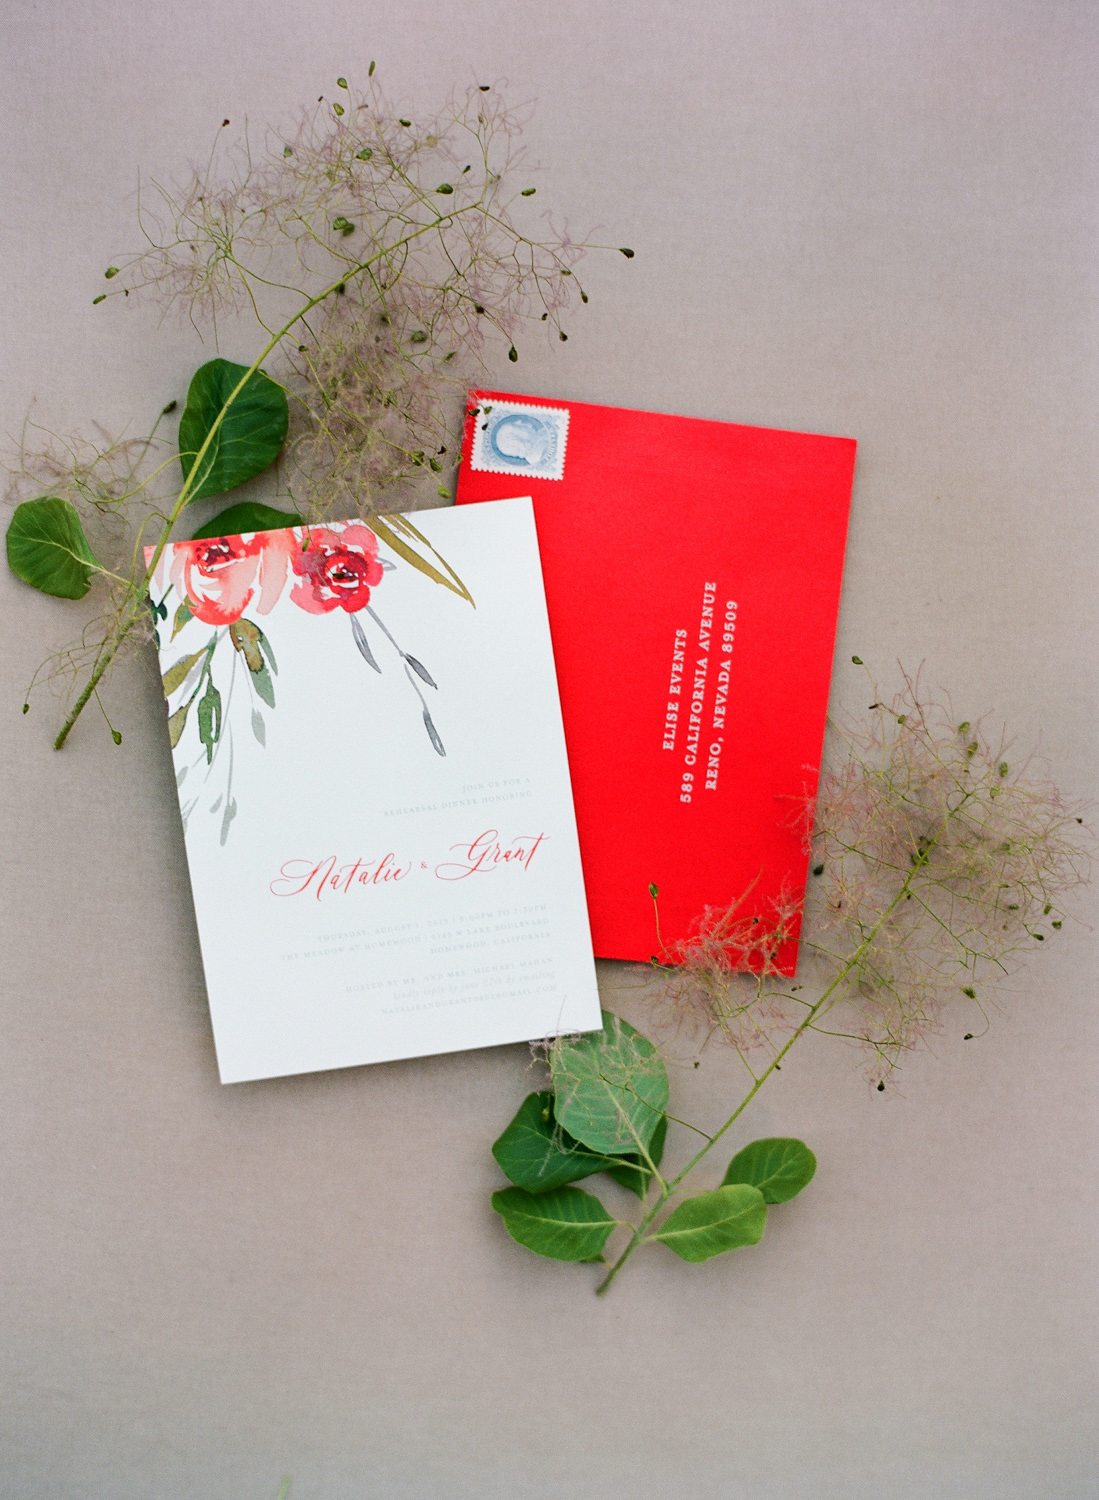 natalie grant rehearsal dinner invitations